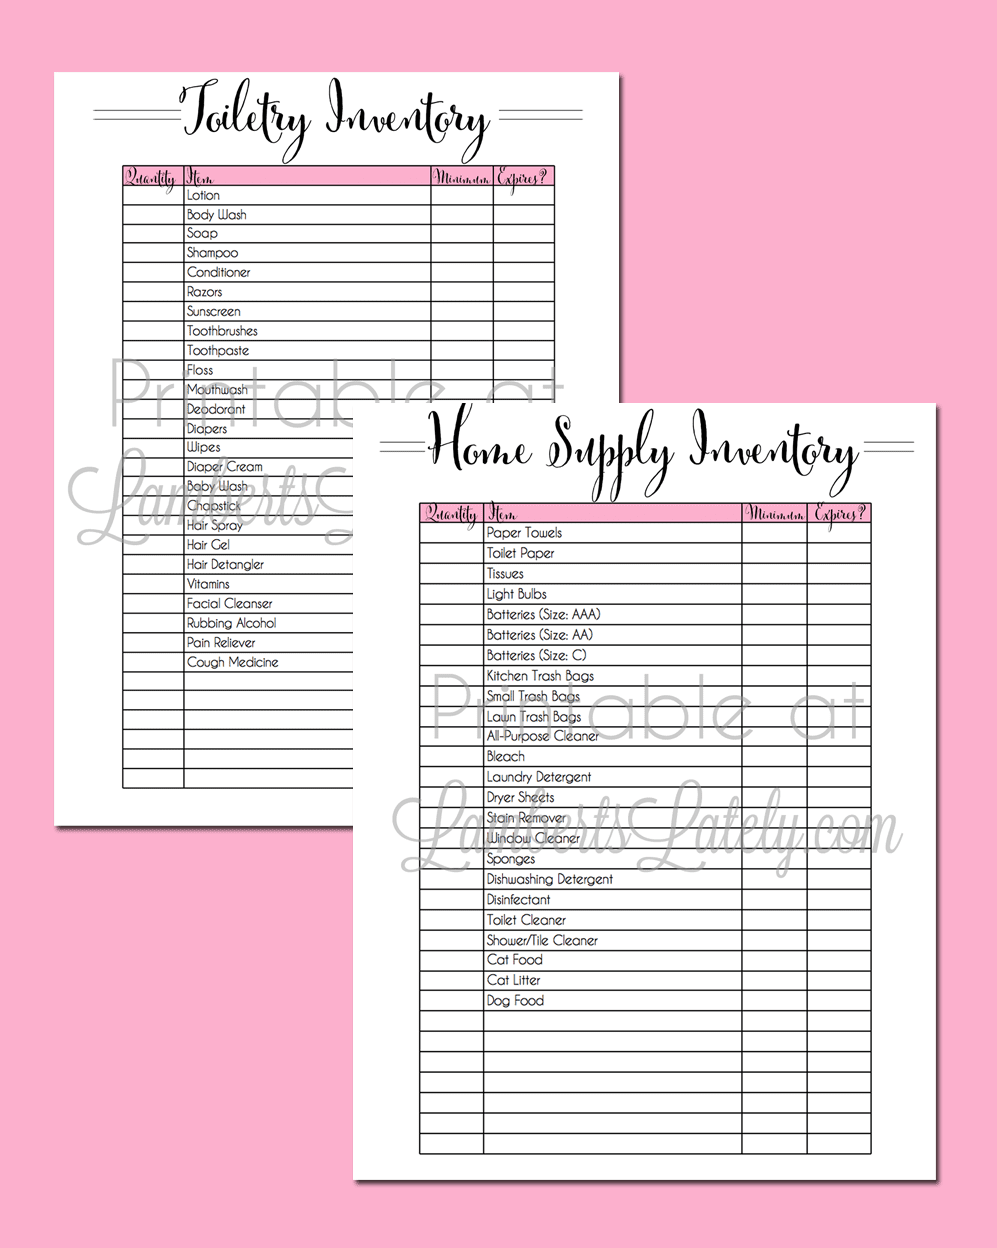 Great free printable toiletry and home supply inventory sheets - manage your home efficiently!